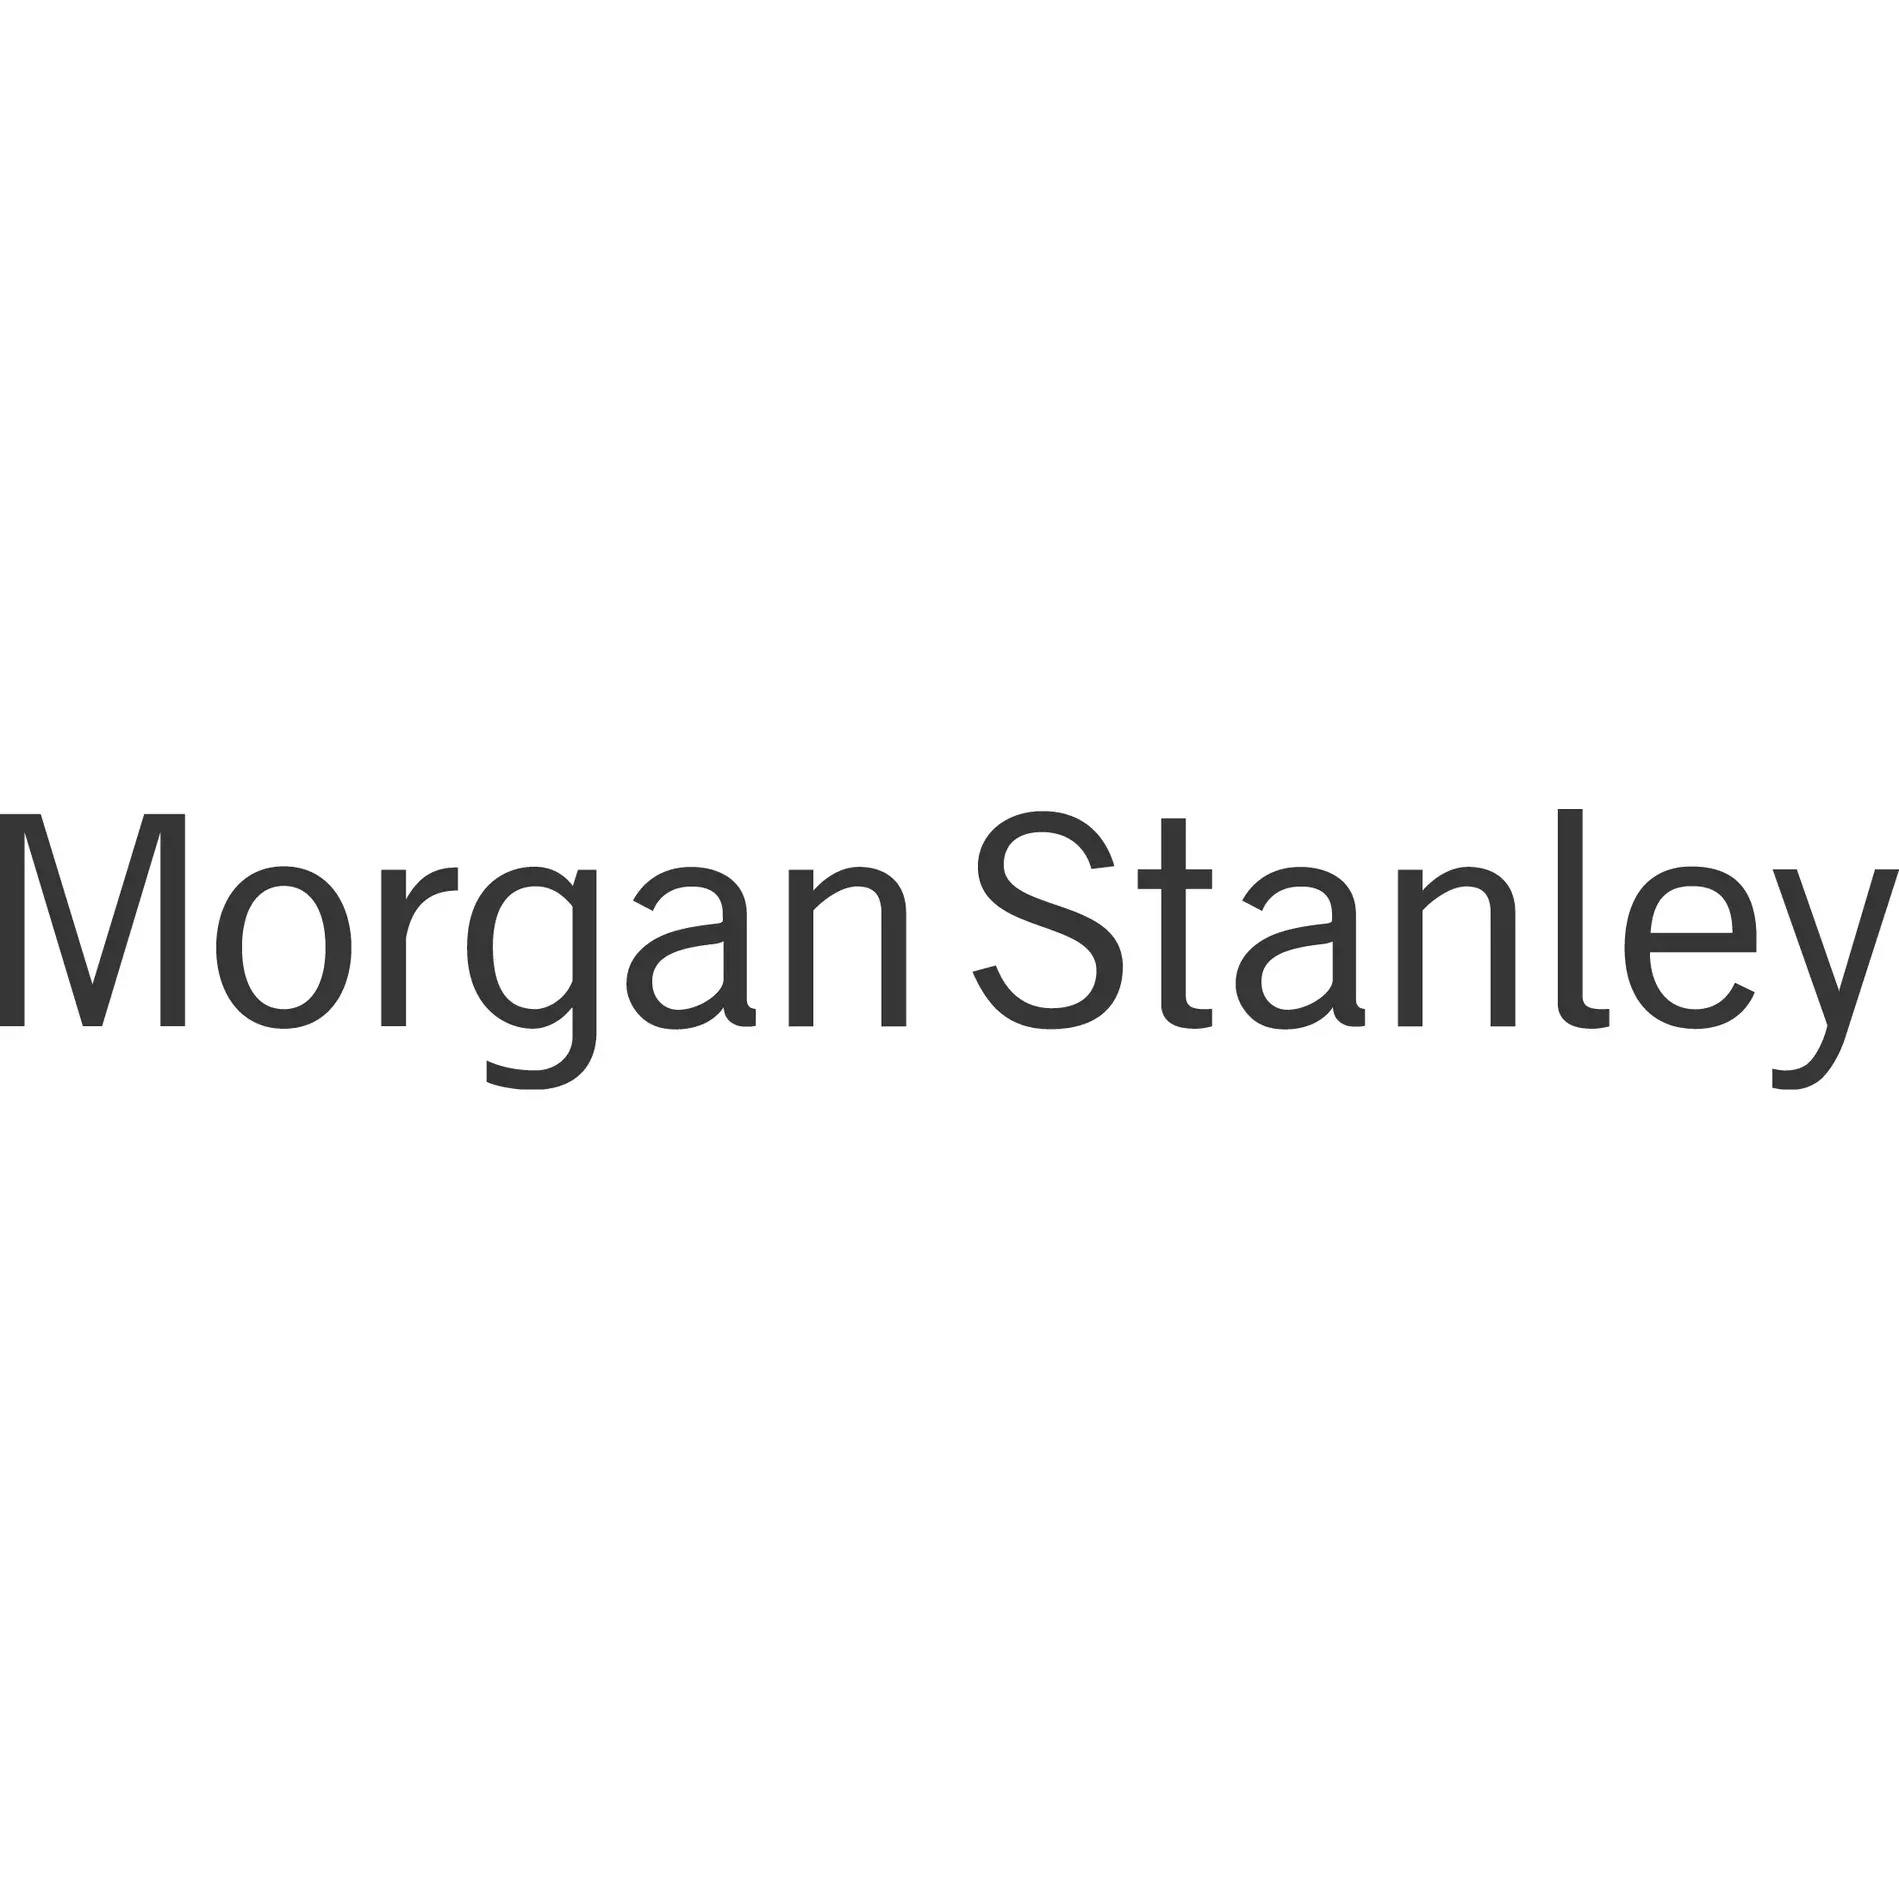 The Coleman Group - Morgan Stanley | Financial Advisor in Pasadena,California